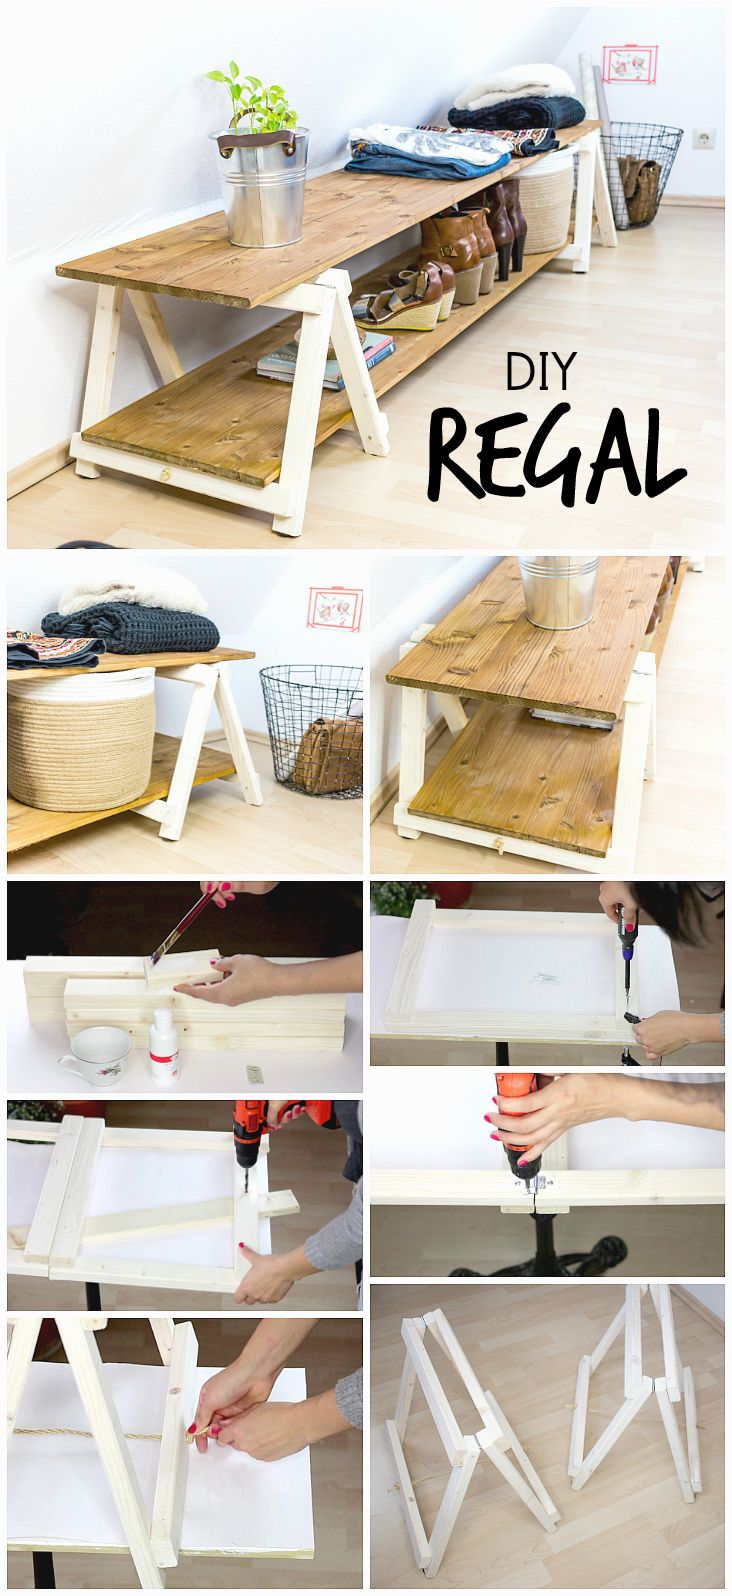 diy regal regal bauen mit mini klappb cken diy anleitungen deutsch pinterest. Black Bedroom Furniture Sets. Home Design Ideas